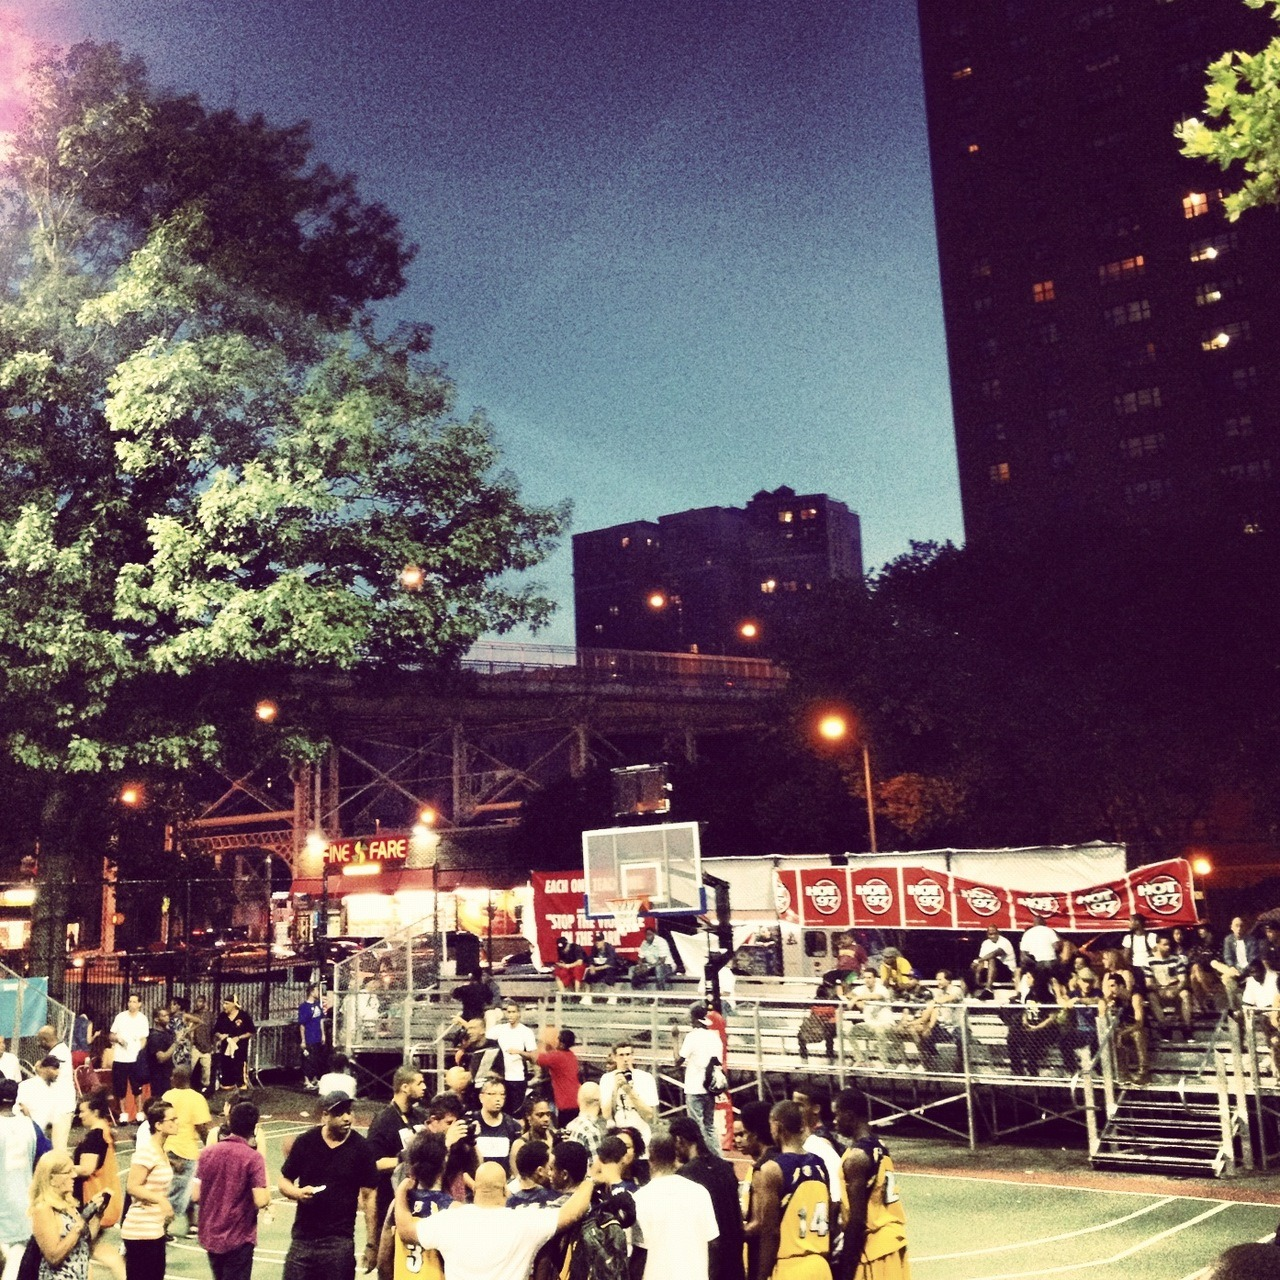 Doin' It In the Park / Rucker Park / 155th St & Frederick Douglas Blvd / Harlem, NYC / 07.14.12 / 8:30PM